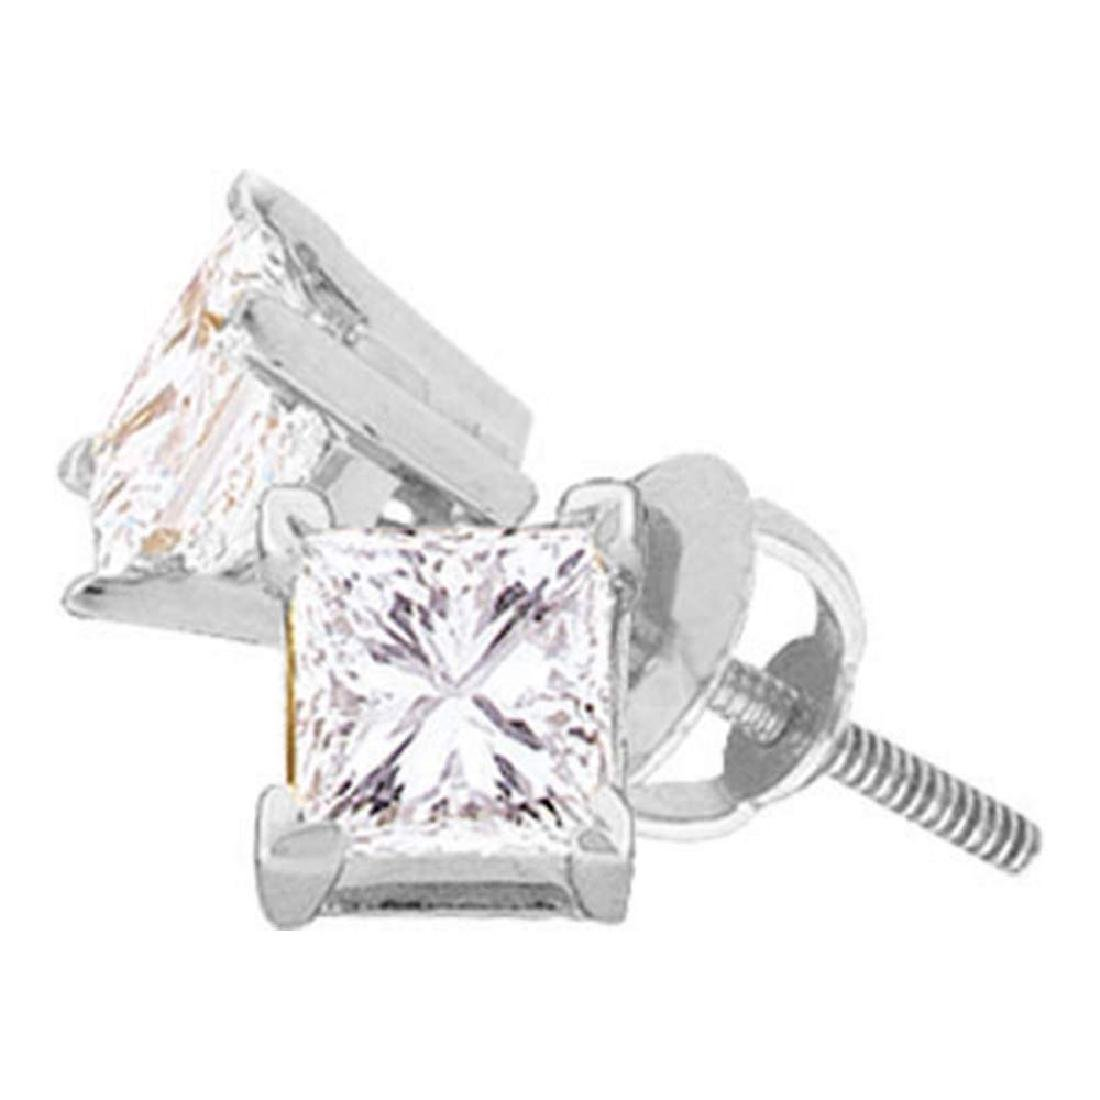 0.40 CTW Princess Diamond Solitaire Stud Earrings 14KT